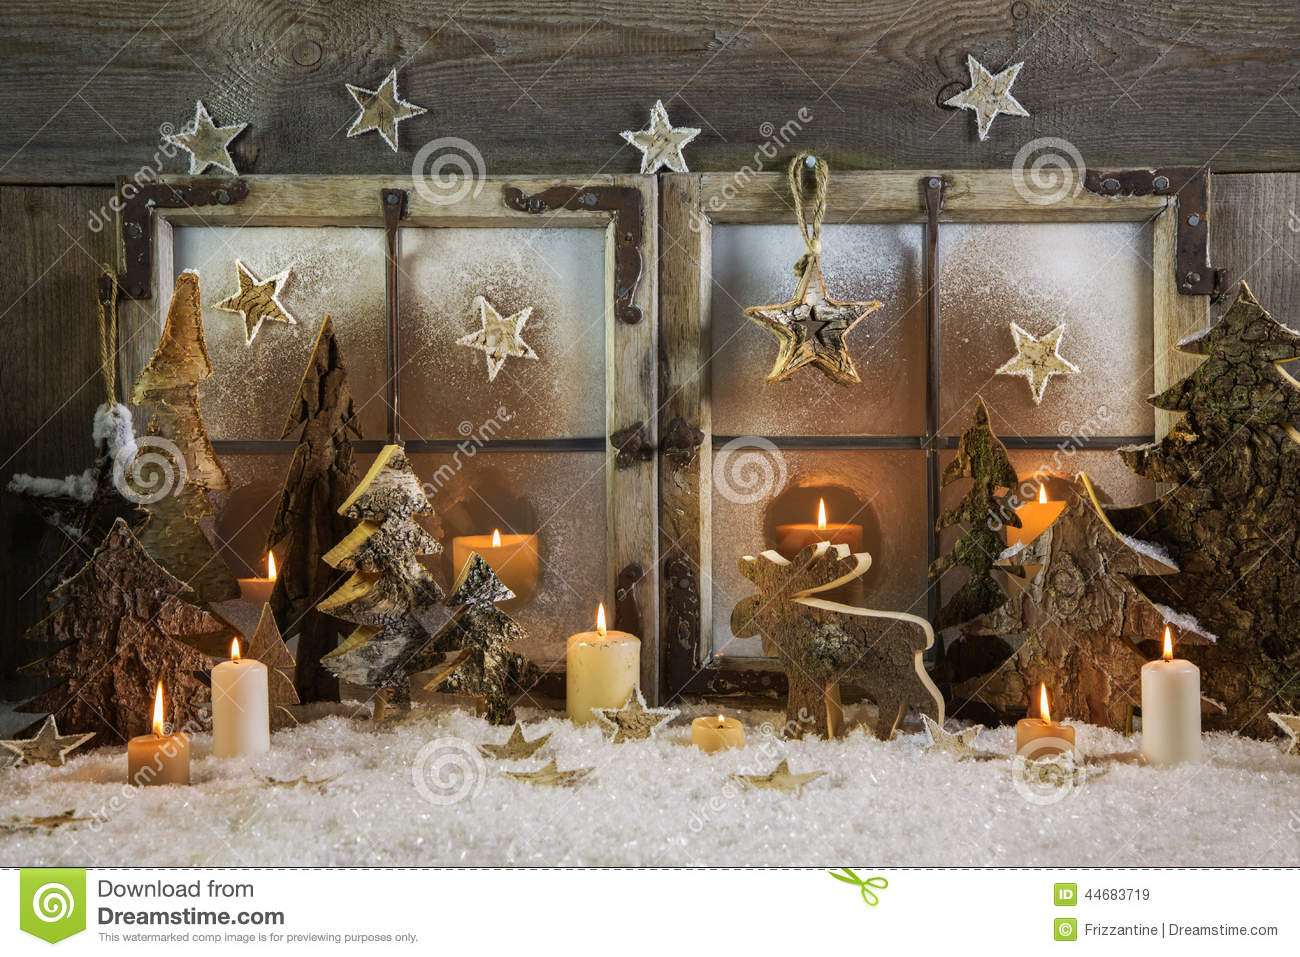 Decoration de noel fait main en bois for Decoration noel exterieur d occasion